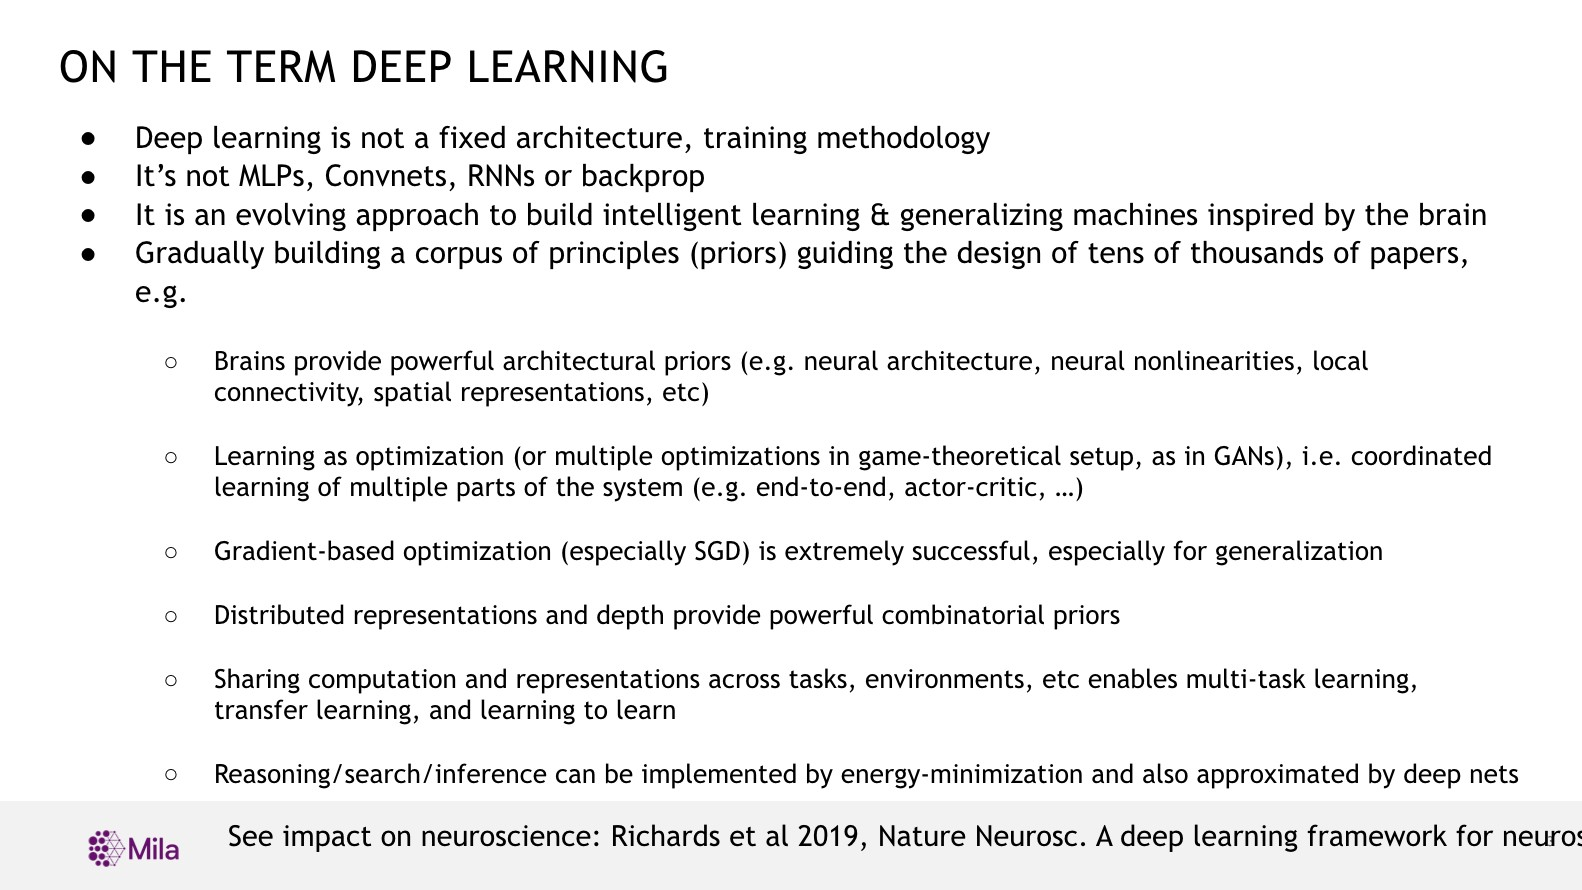 On the term deep learning